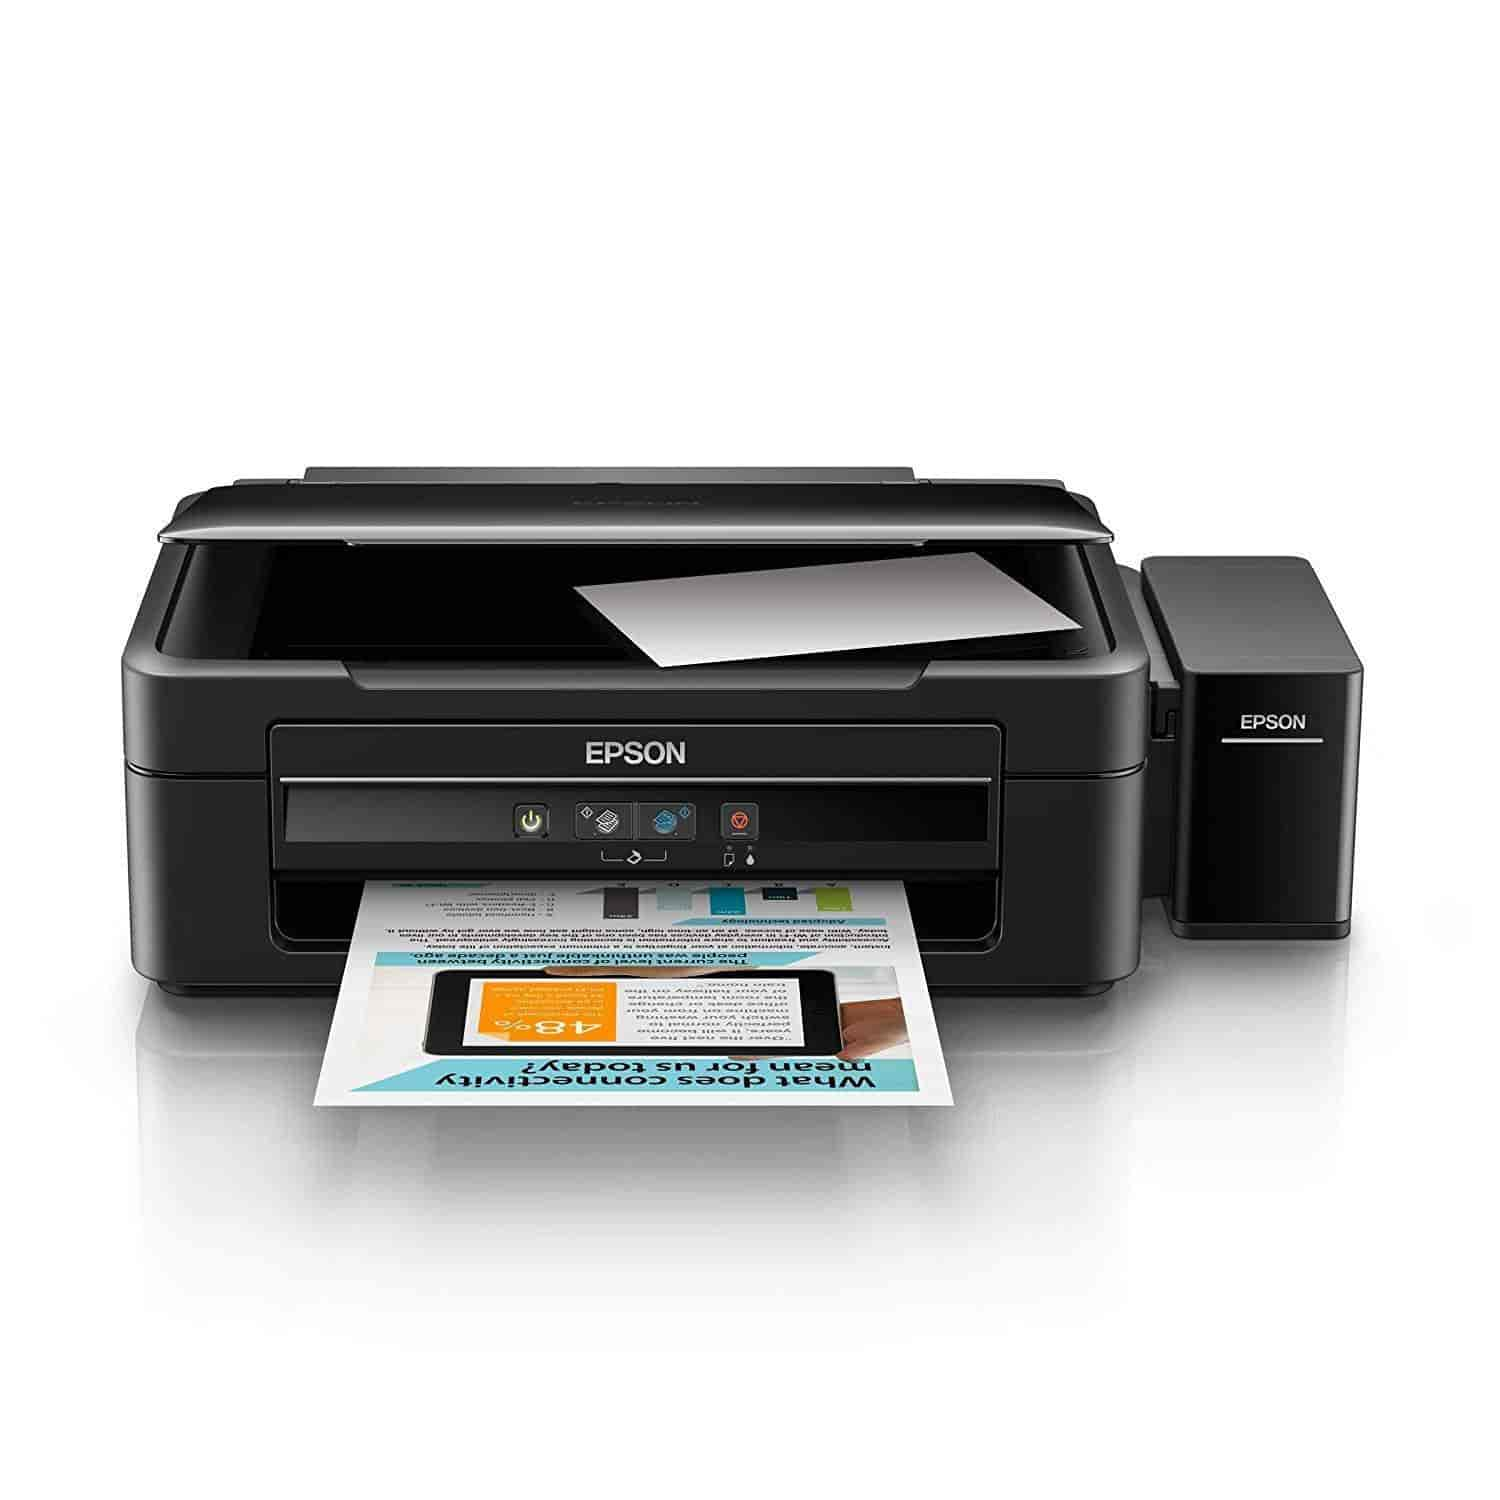 Epson L360 Multi-Function Color All In One Printer (Black)